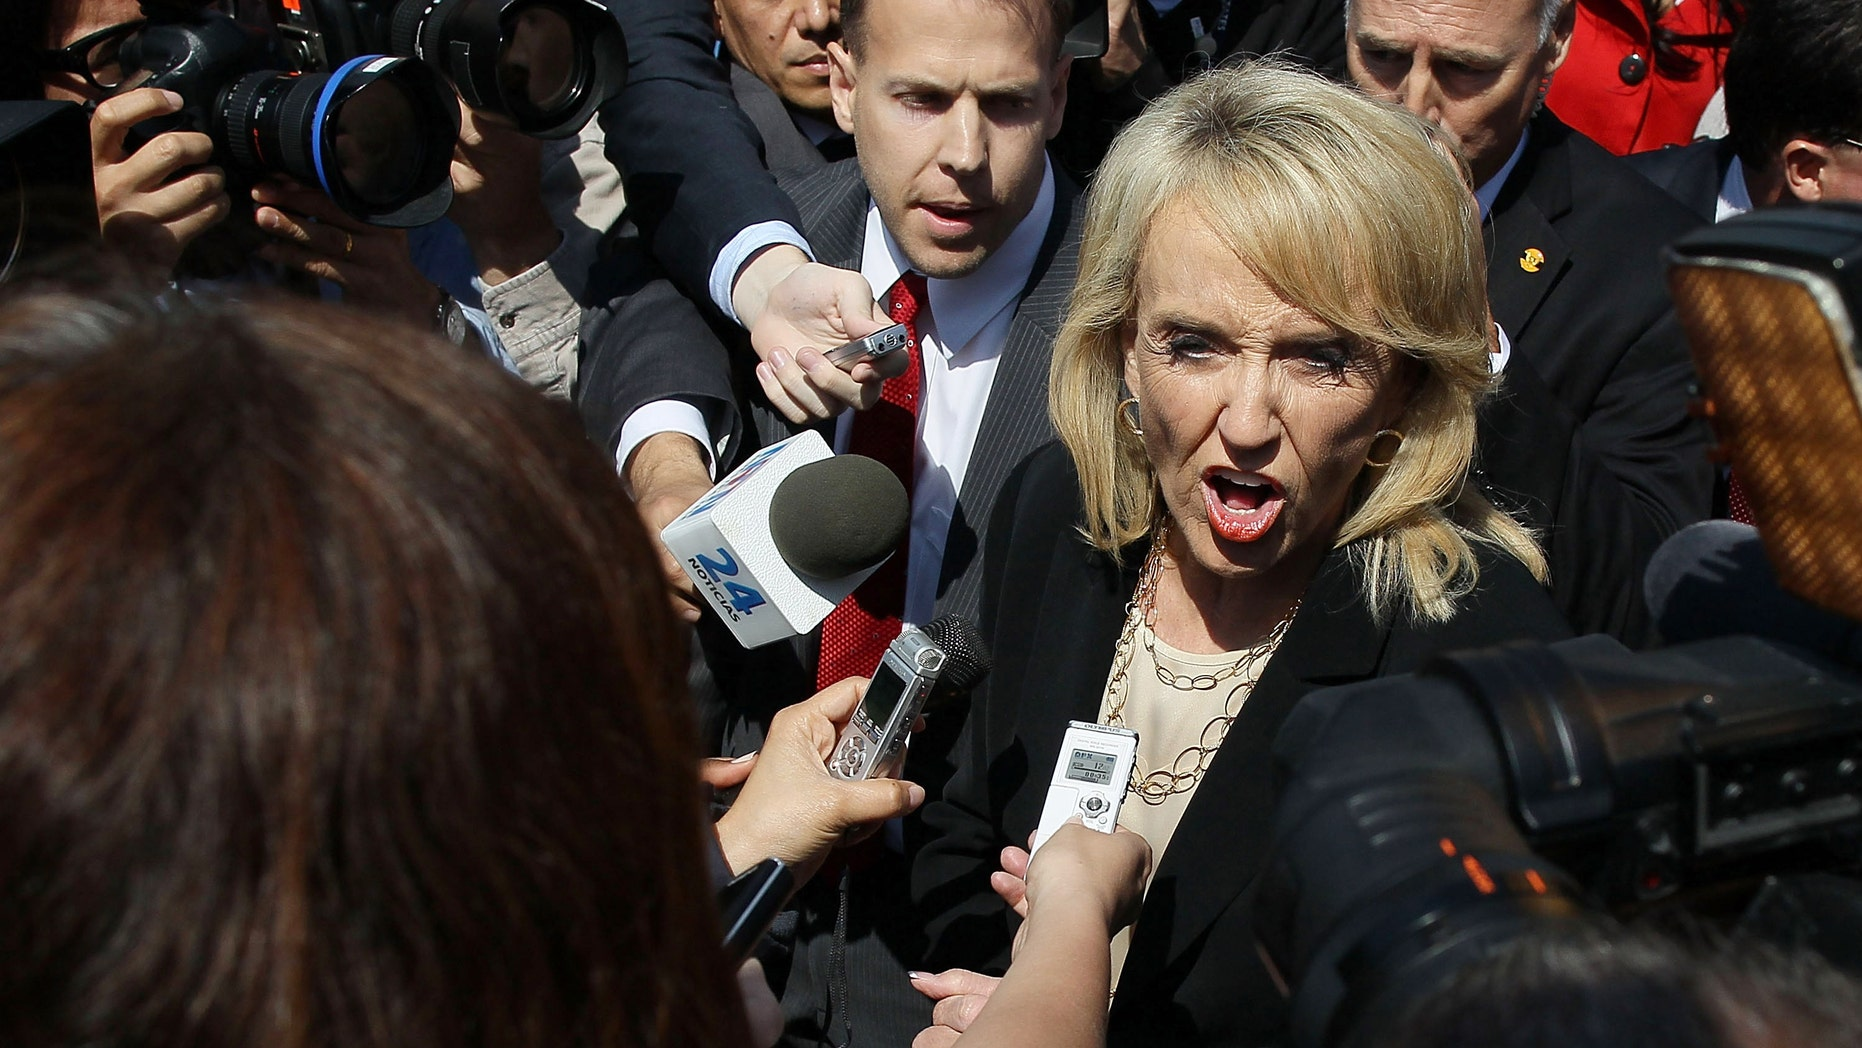 WASHINGTON, DC - APRIL 25:  Arizona Gov. Jan Brewer speaks to the media after arguments at the U.S. Supreme Court, on April 25, 2012 in Washington, DC. This morning the high court will heard arguments on Arizona v. United States and will be tasked with deciding the conflicting roles of national and state governments in controlling the lives of noncitizens living illegally in the U.S.while deciding the constitutionality of Arizona's immigration law SB 1070.  (Photo by Mark Wilson/Getty Images)